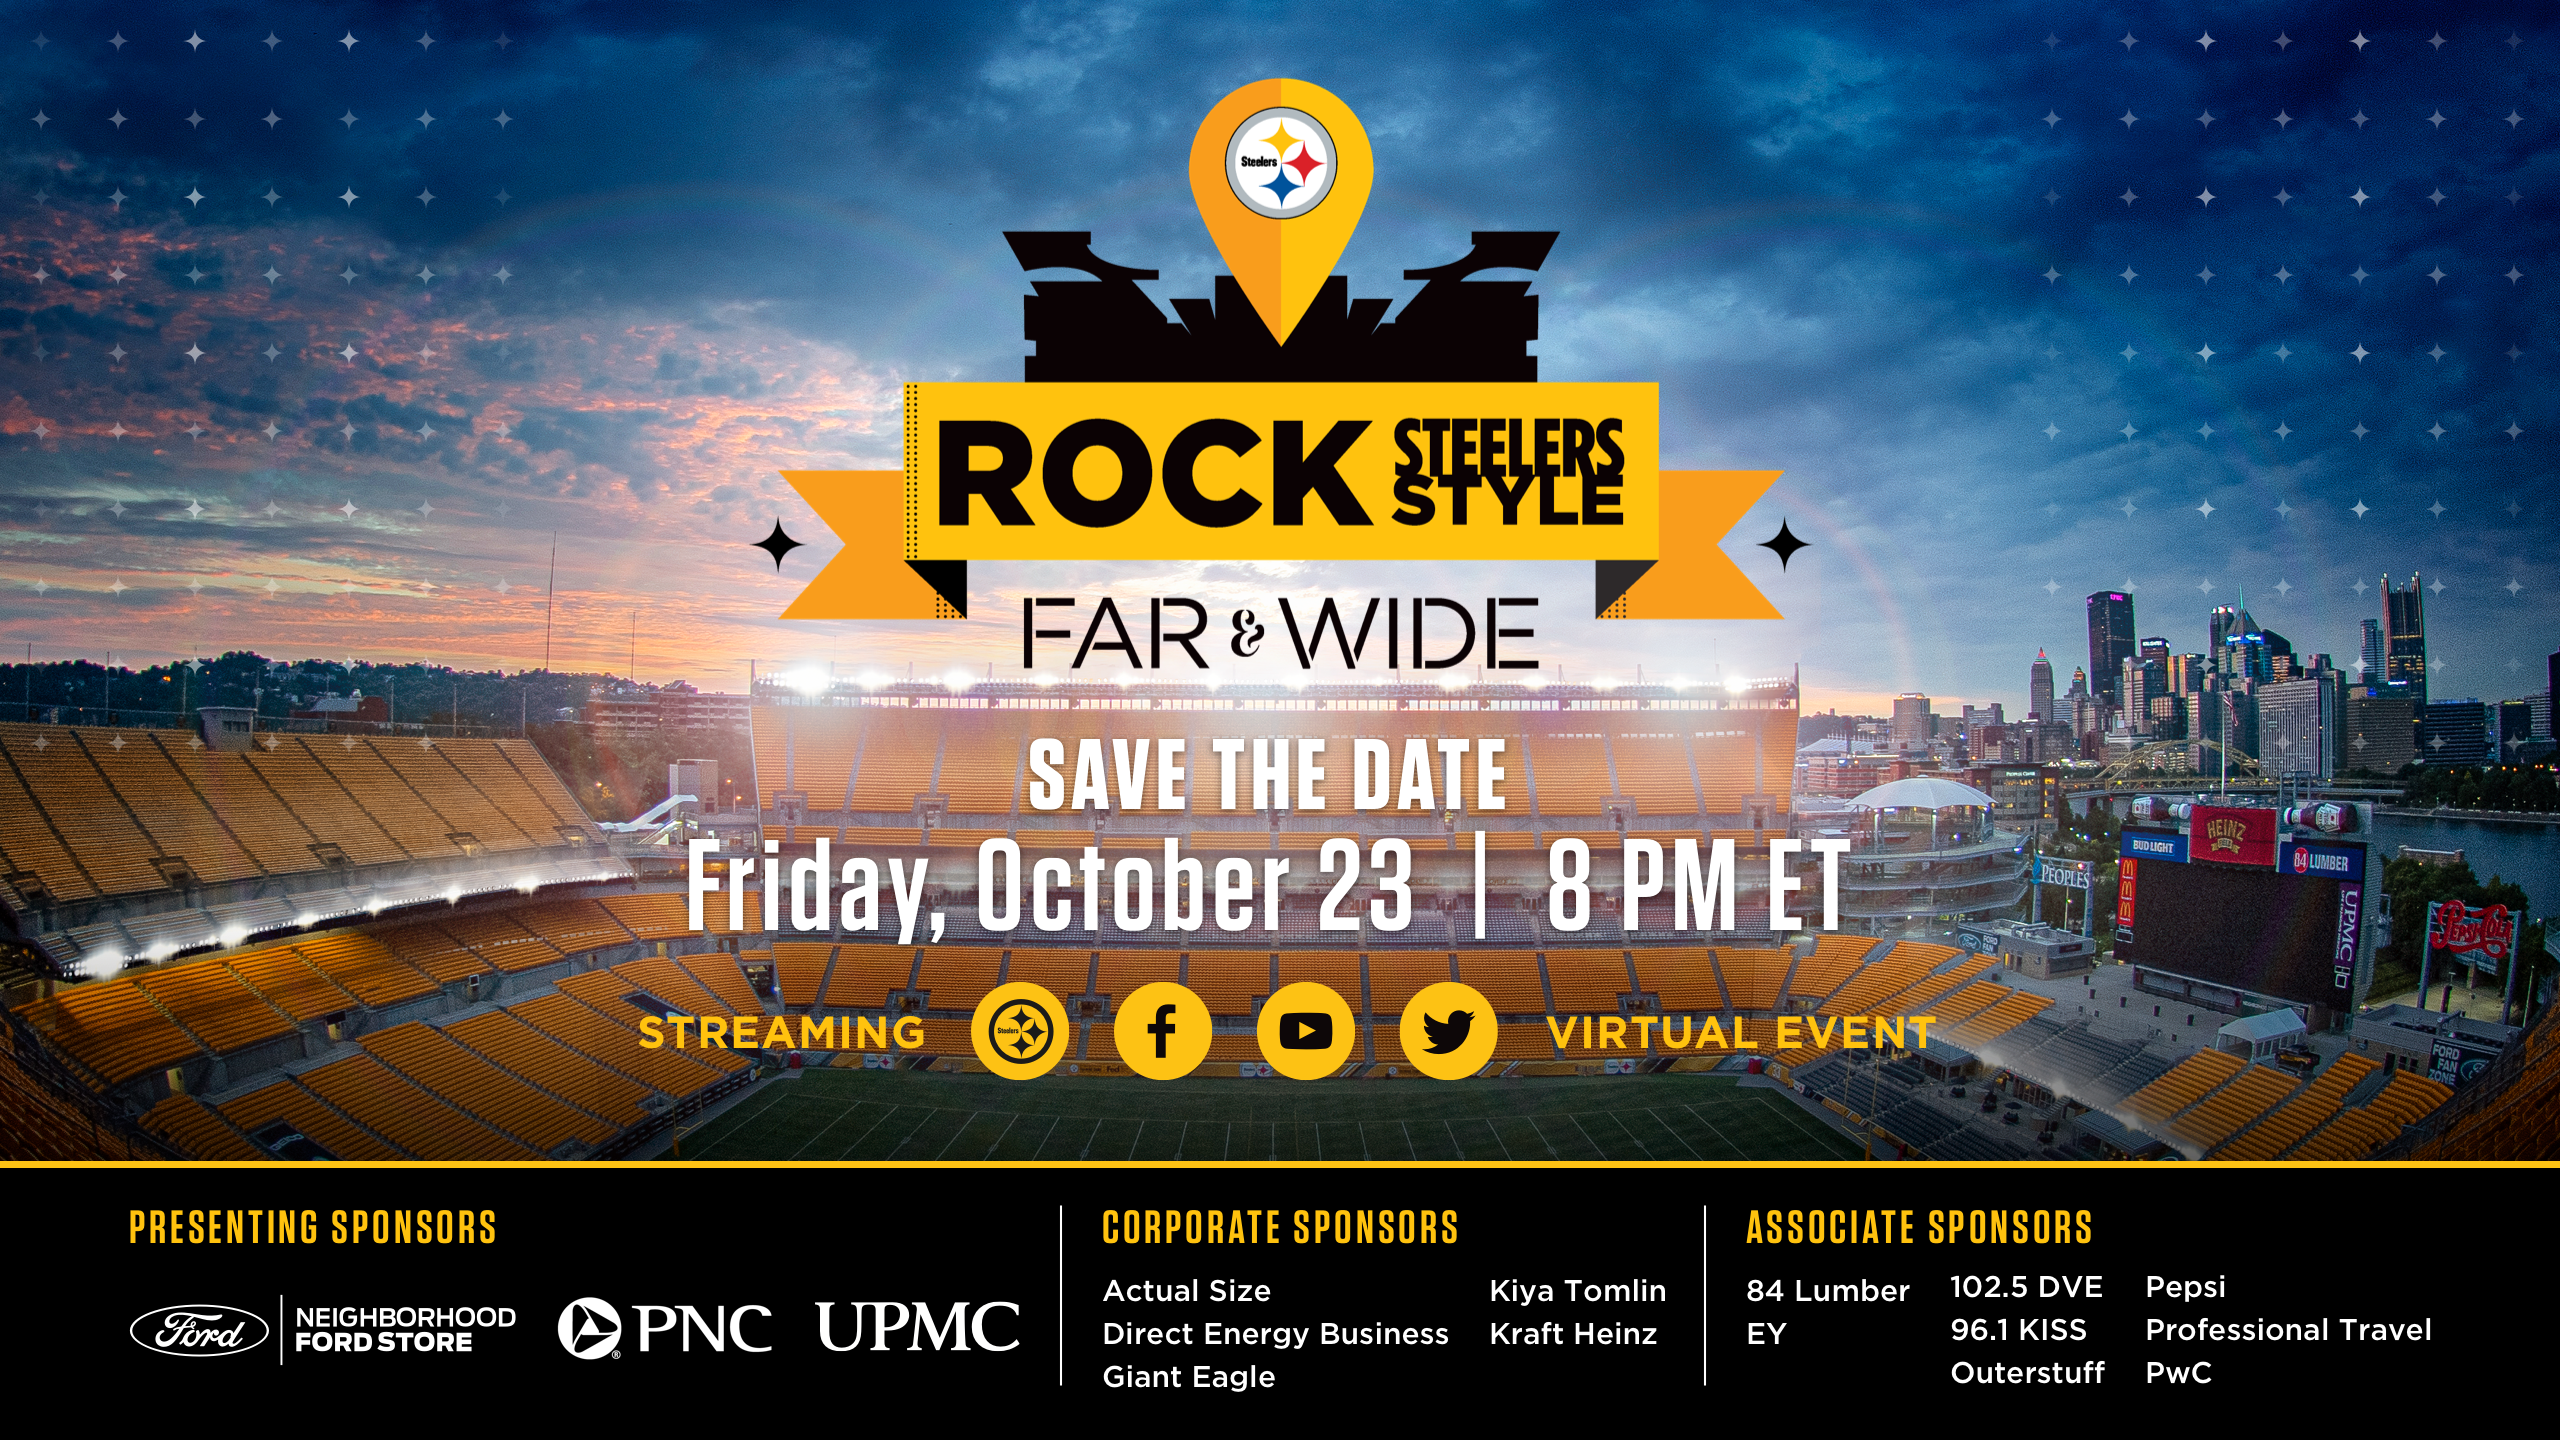 Rock Steelers Style Far and Wide